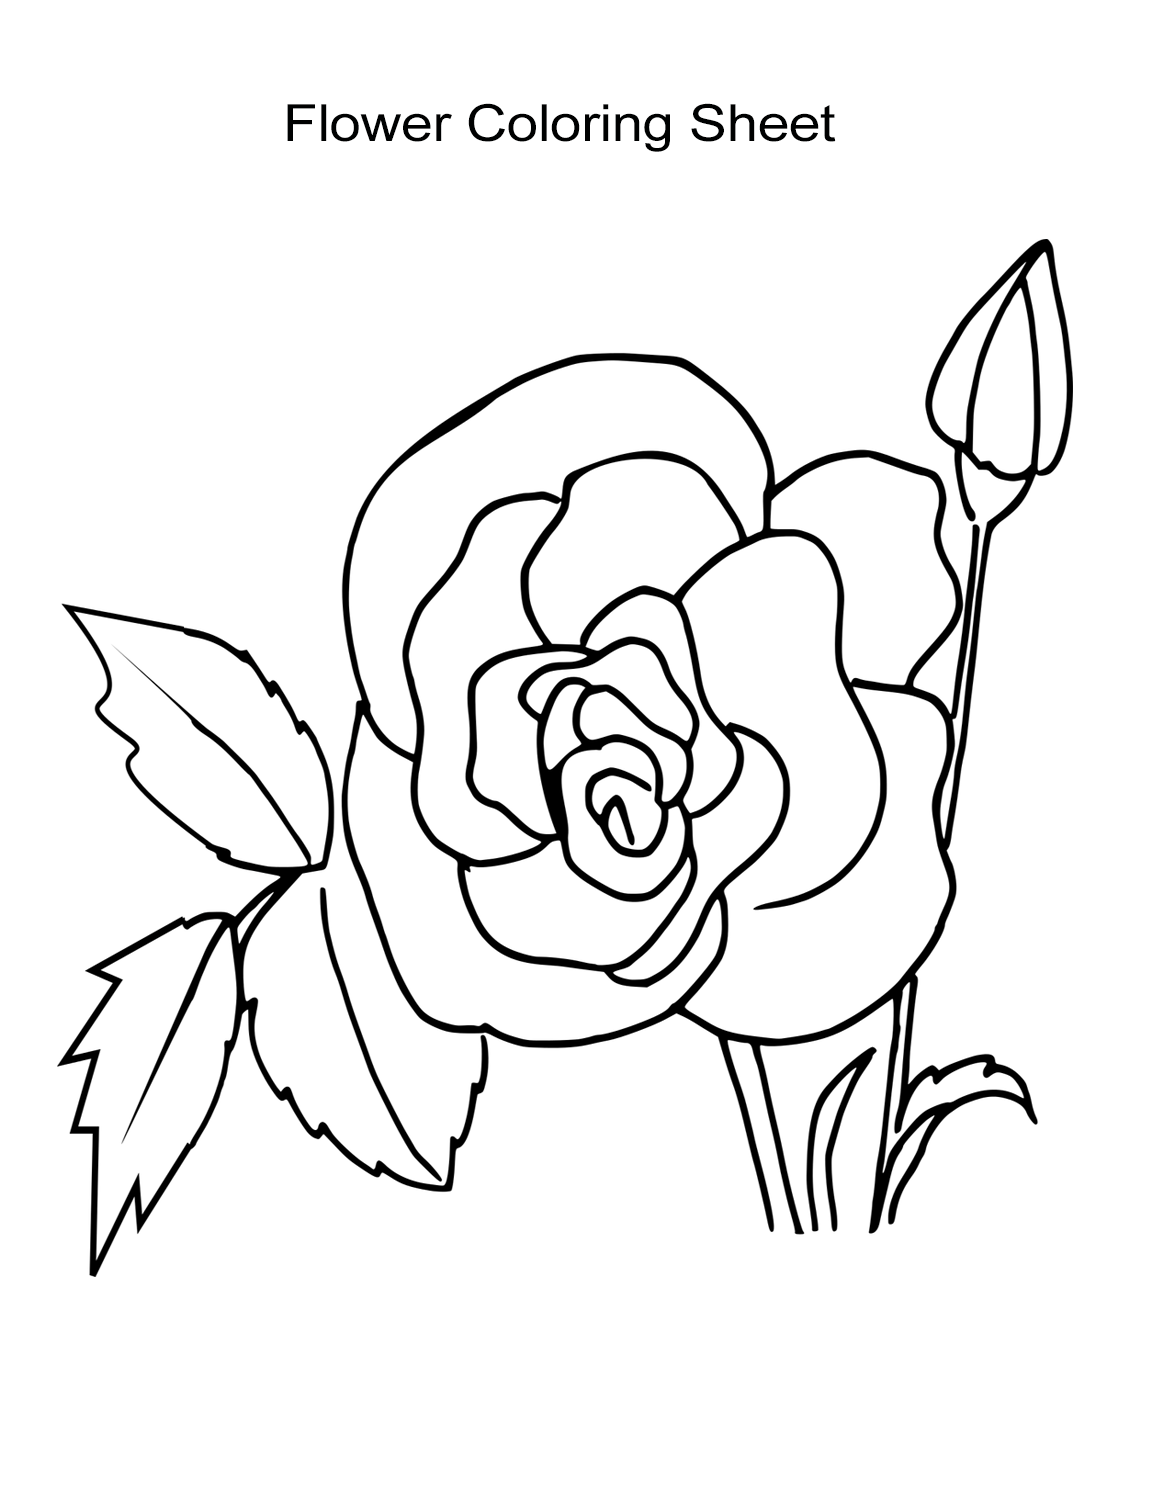 flowers coloring sheet 10 flower coloring sheets for girls and boys all esl coloring flowers sheet